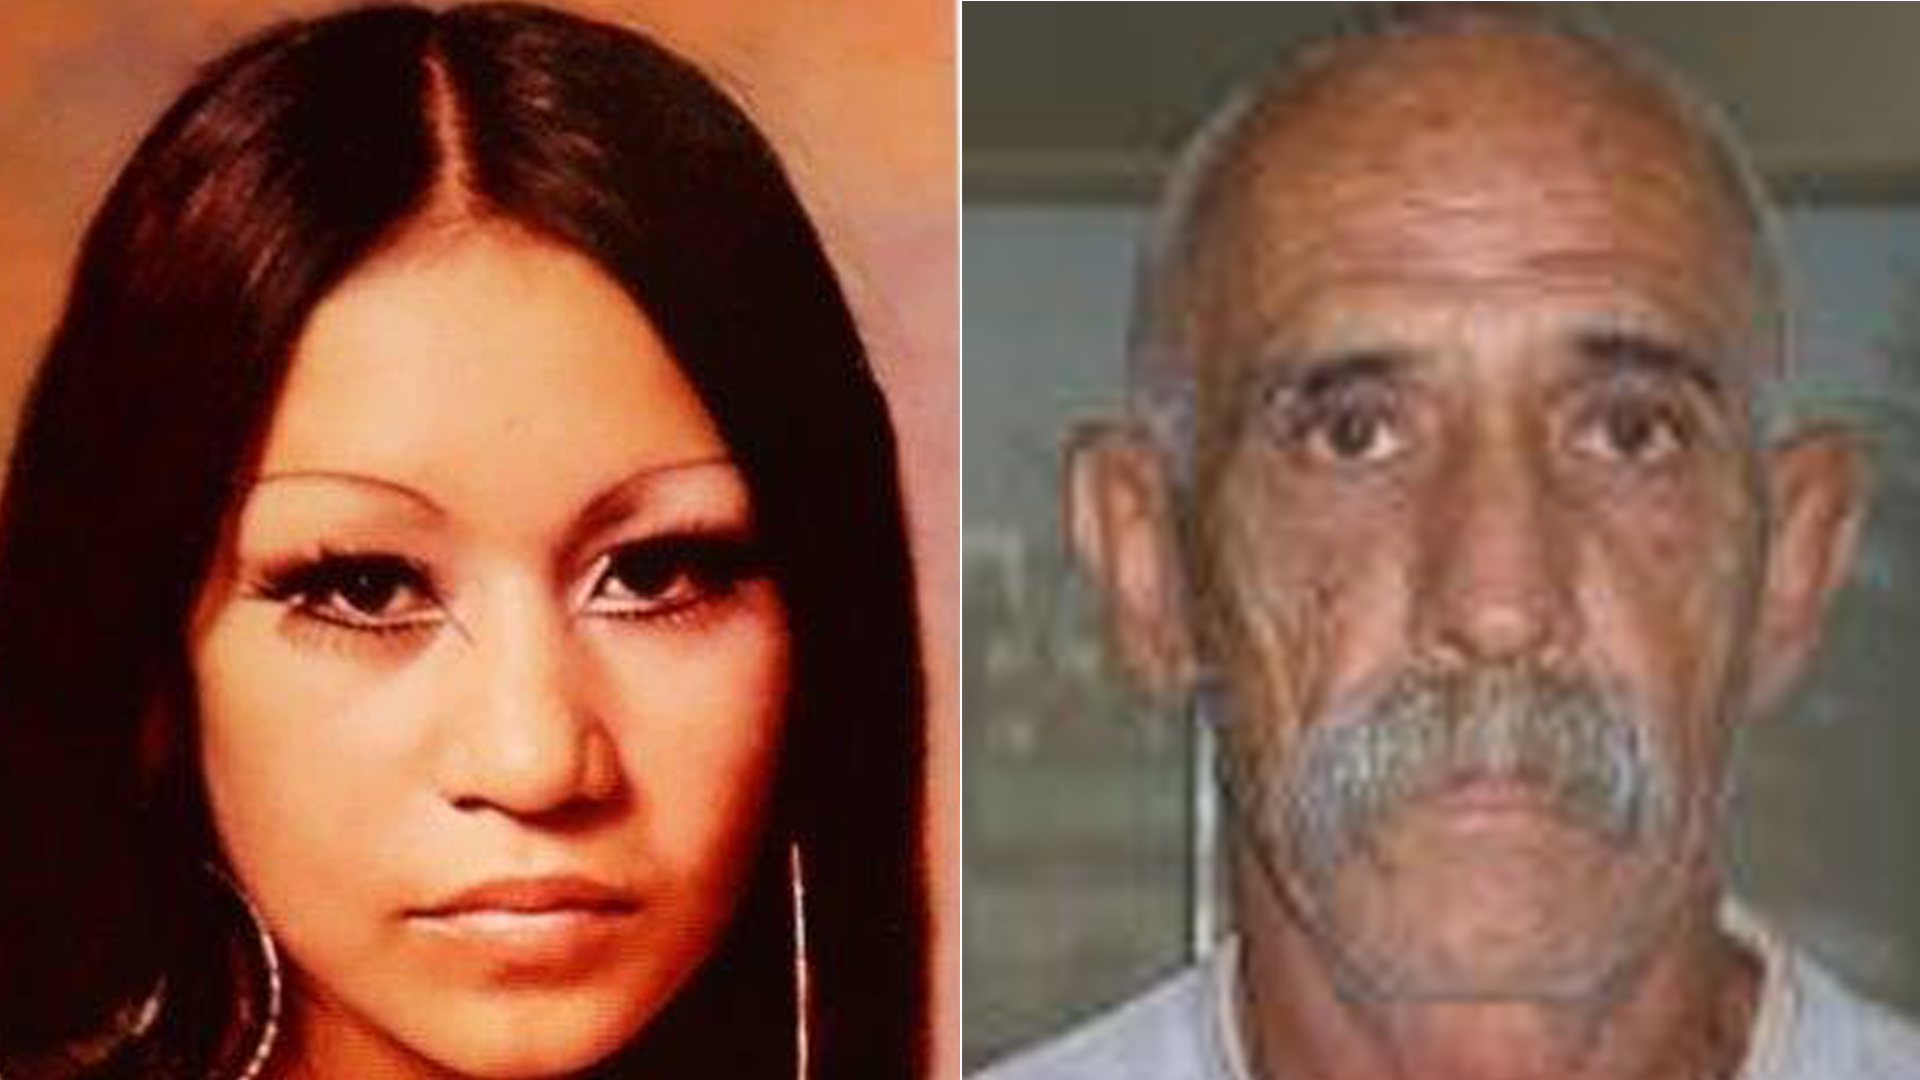 From left to right: Teresa Broudreaux, who was killed by Robert Yniguez in 1980, appears in an undated photo released by the Los Angeles County Sheriff's Department. Robert Yniguez is pictured in a photo released by the department.